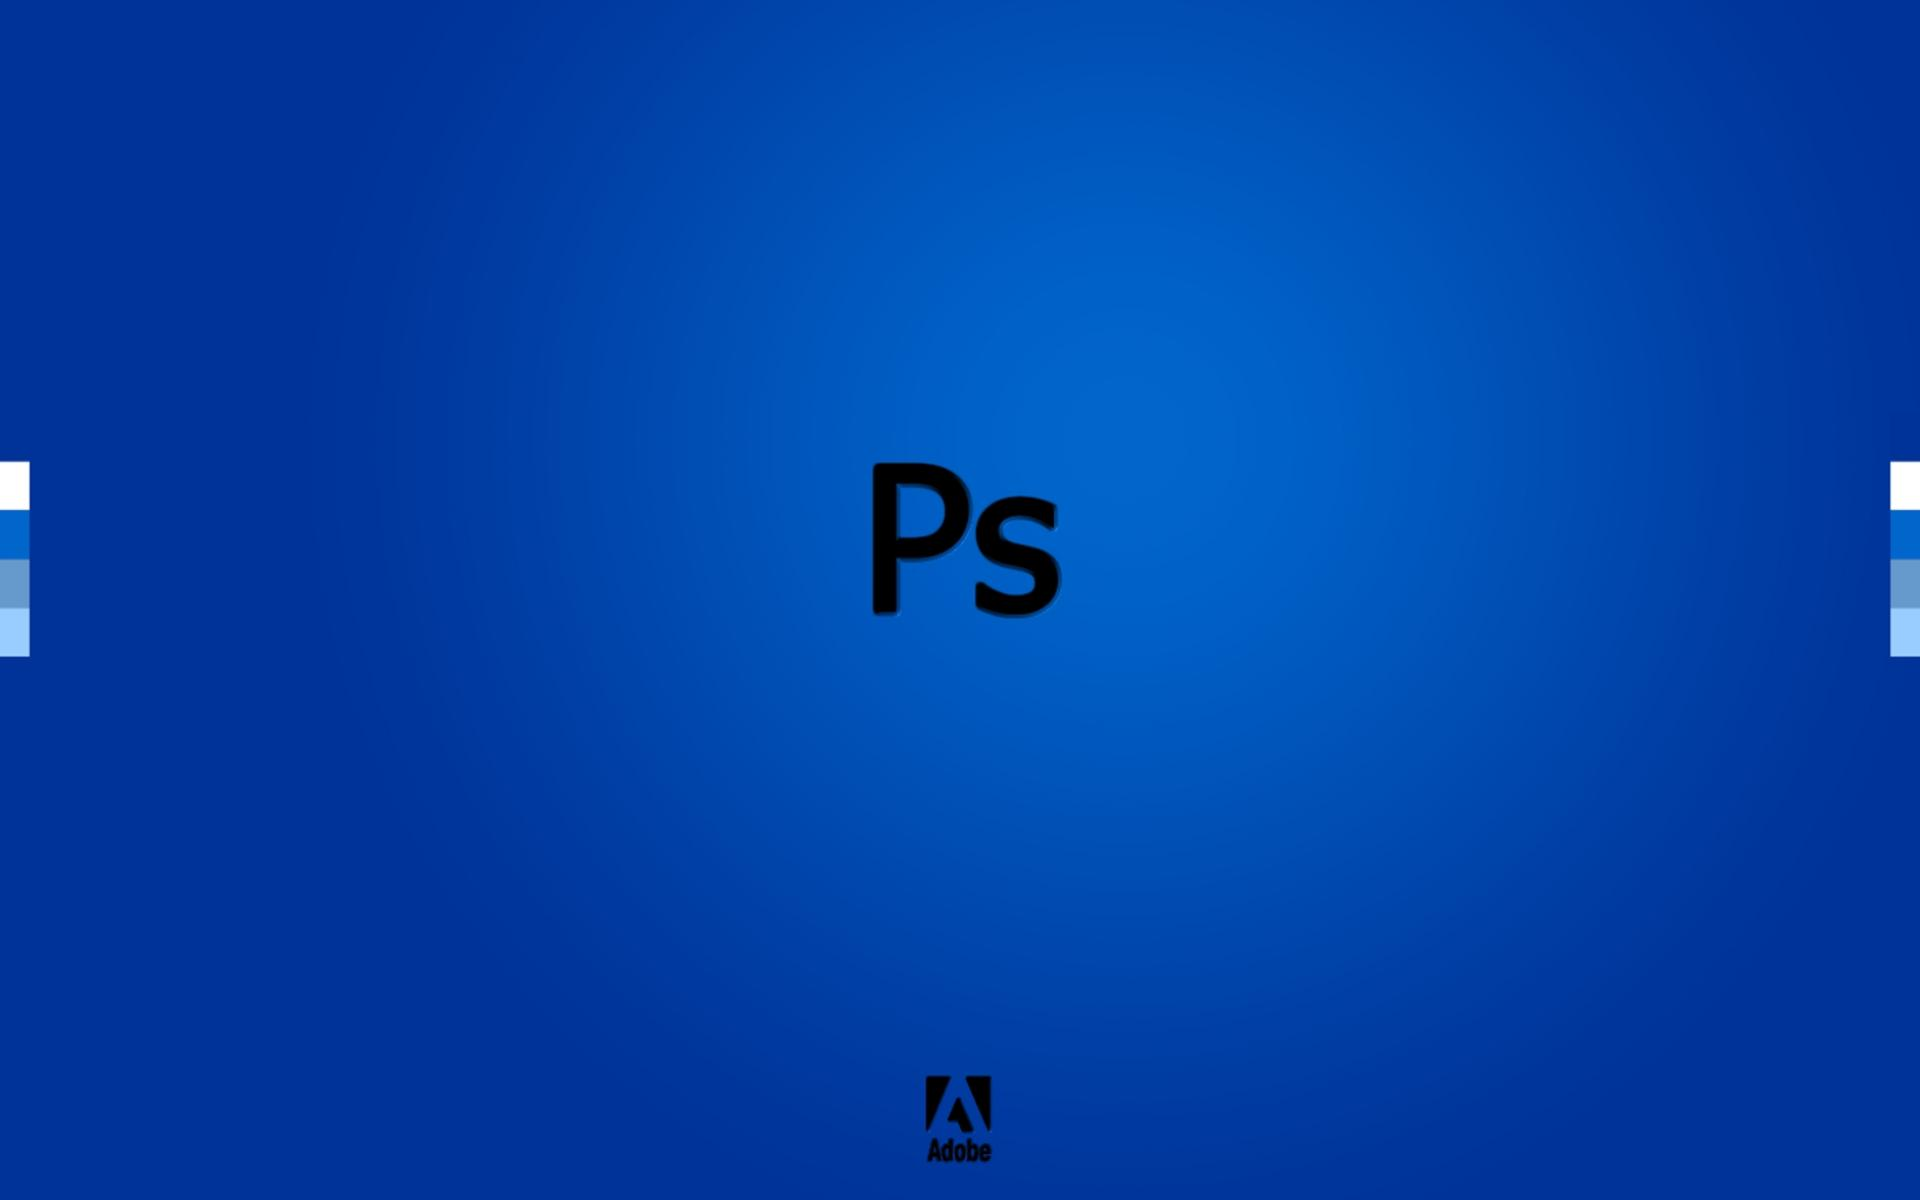 Обои - Adobe Photoshop 1920x1200